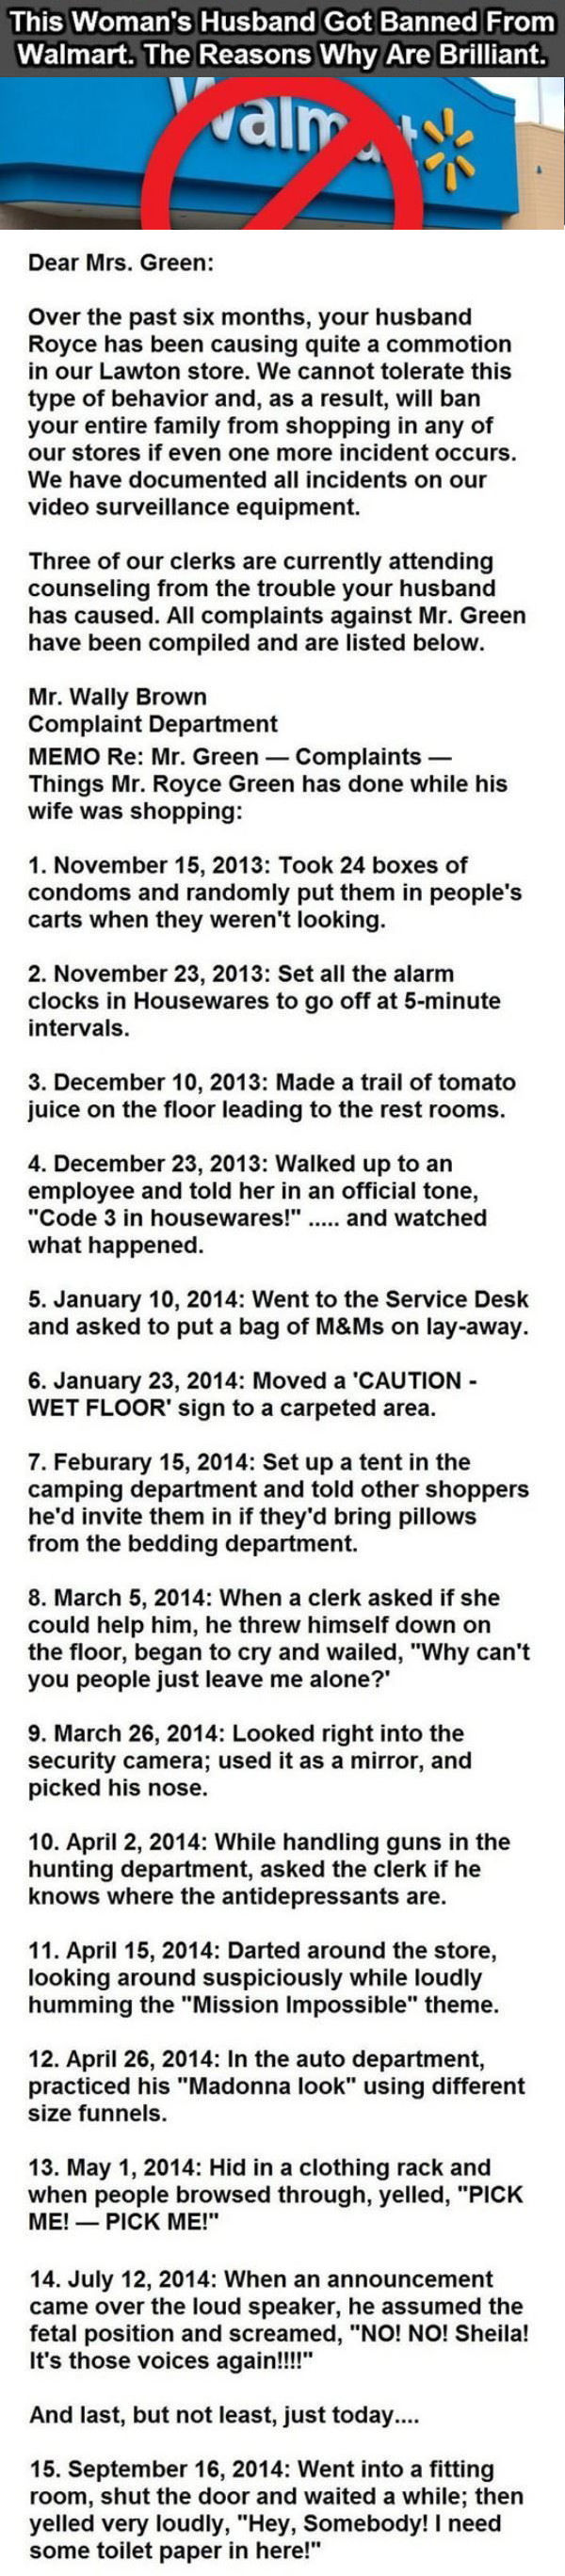 This Woman's Husband Got Banned From Walmart The Reasons Why Are Hilarious